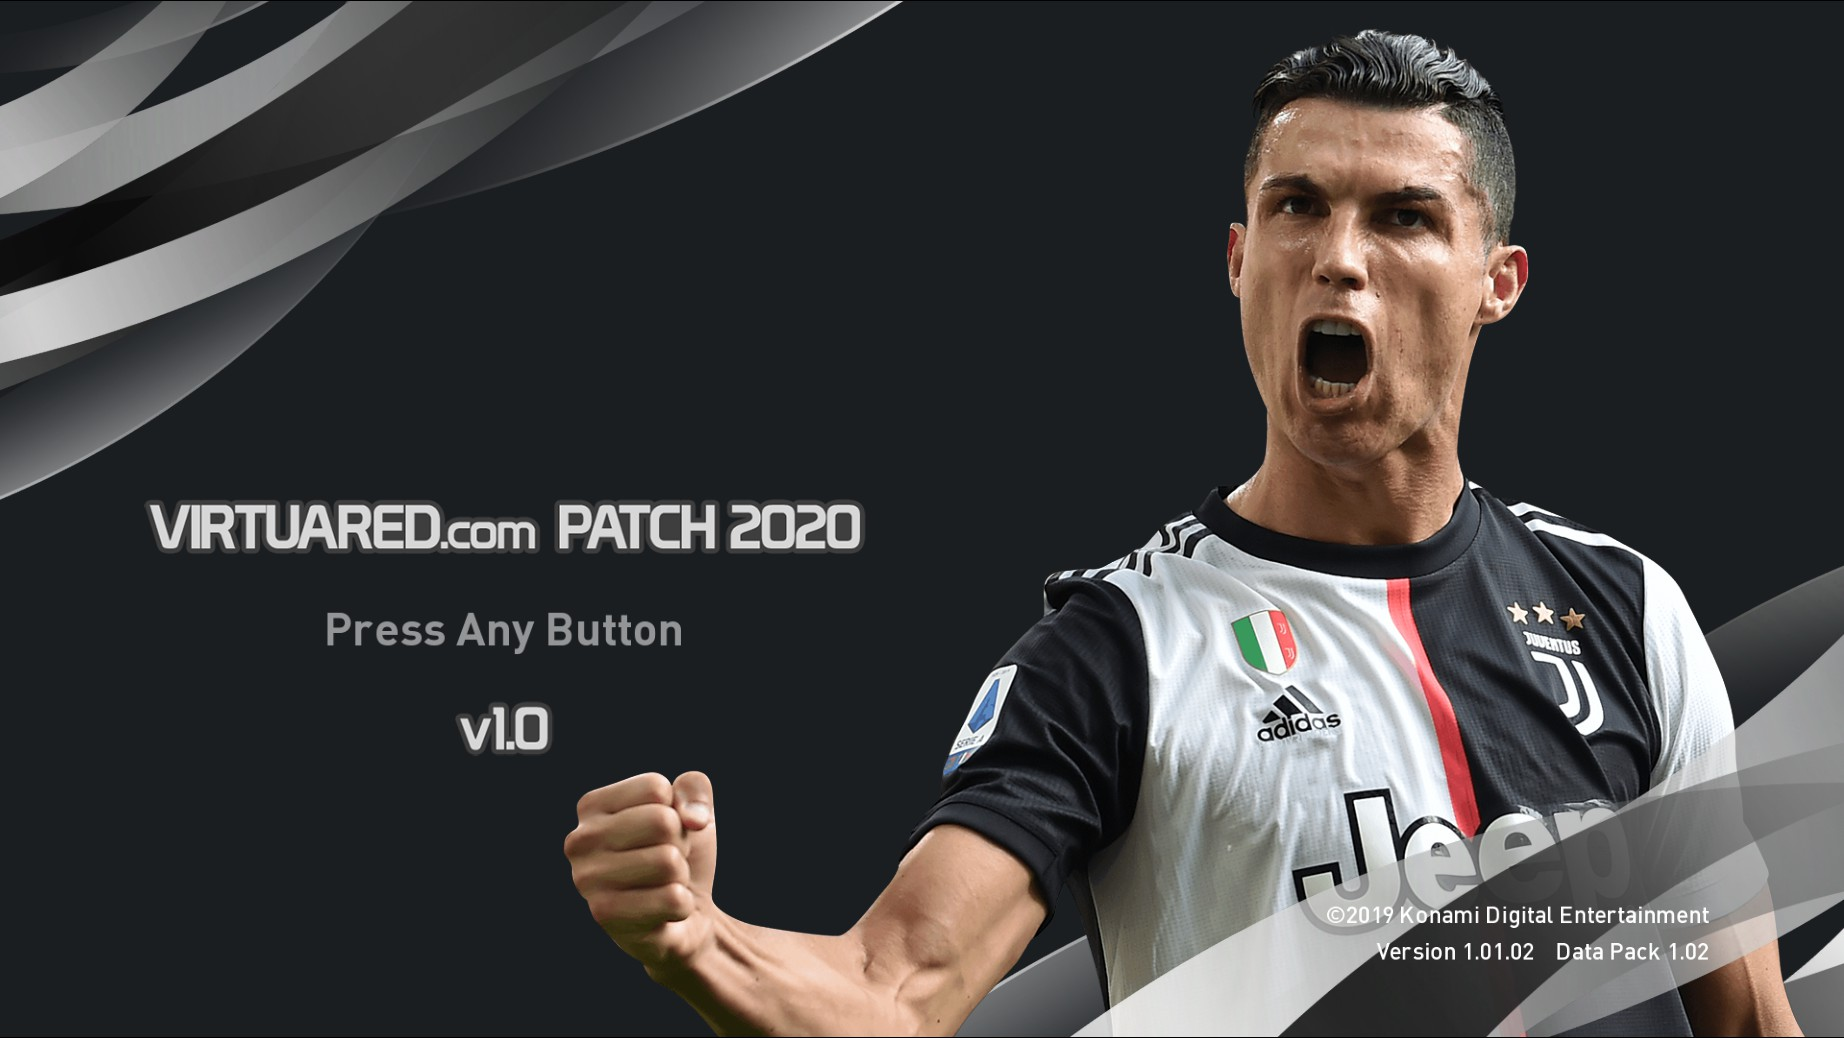 VirtuaRED.com Patch 2020 v1.0 ¡ya disponible!